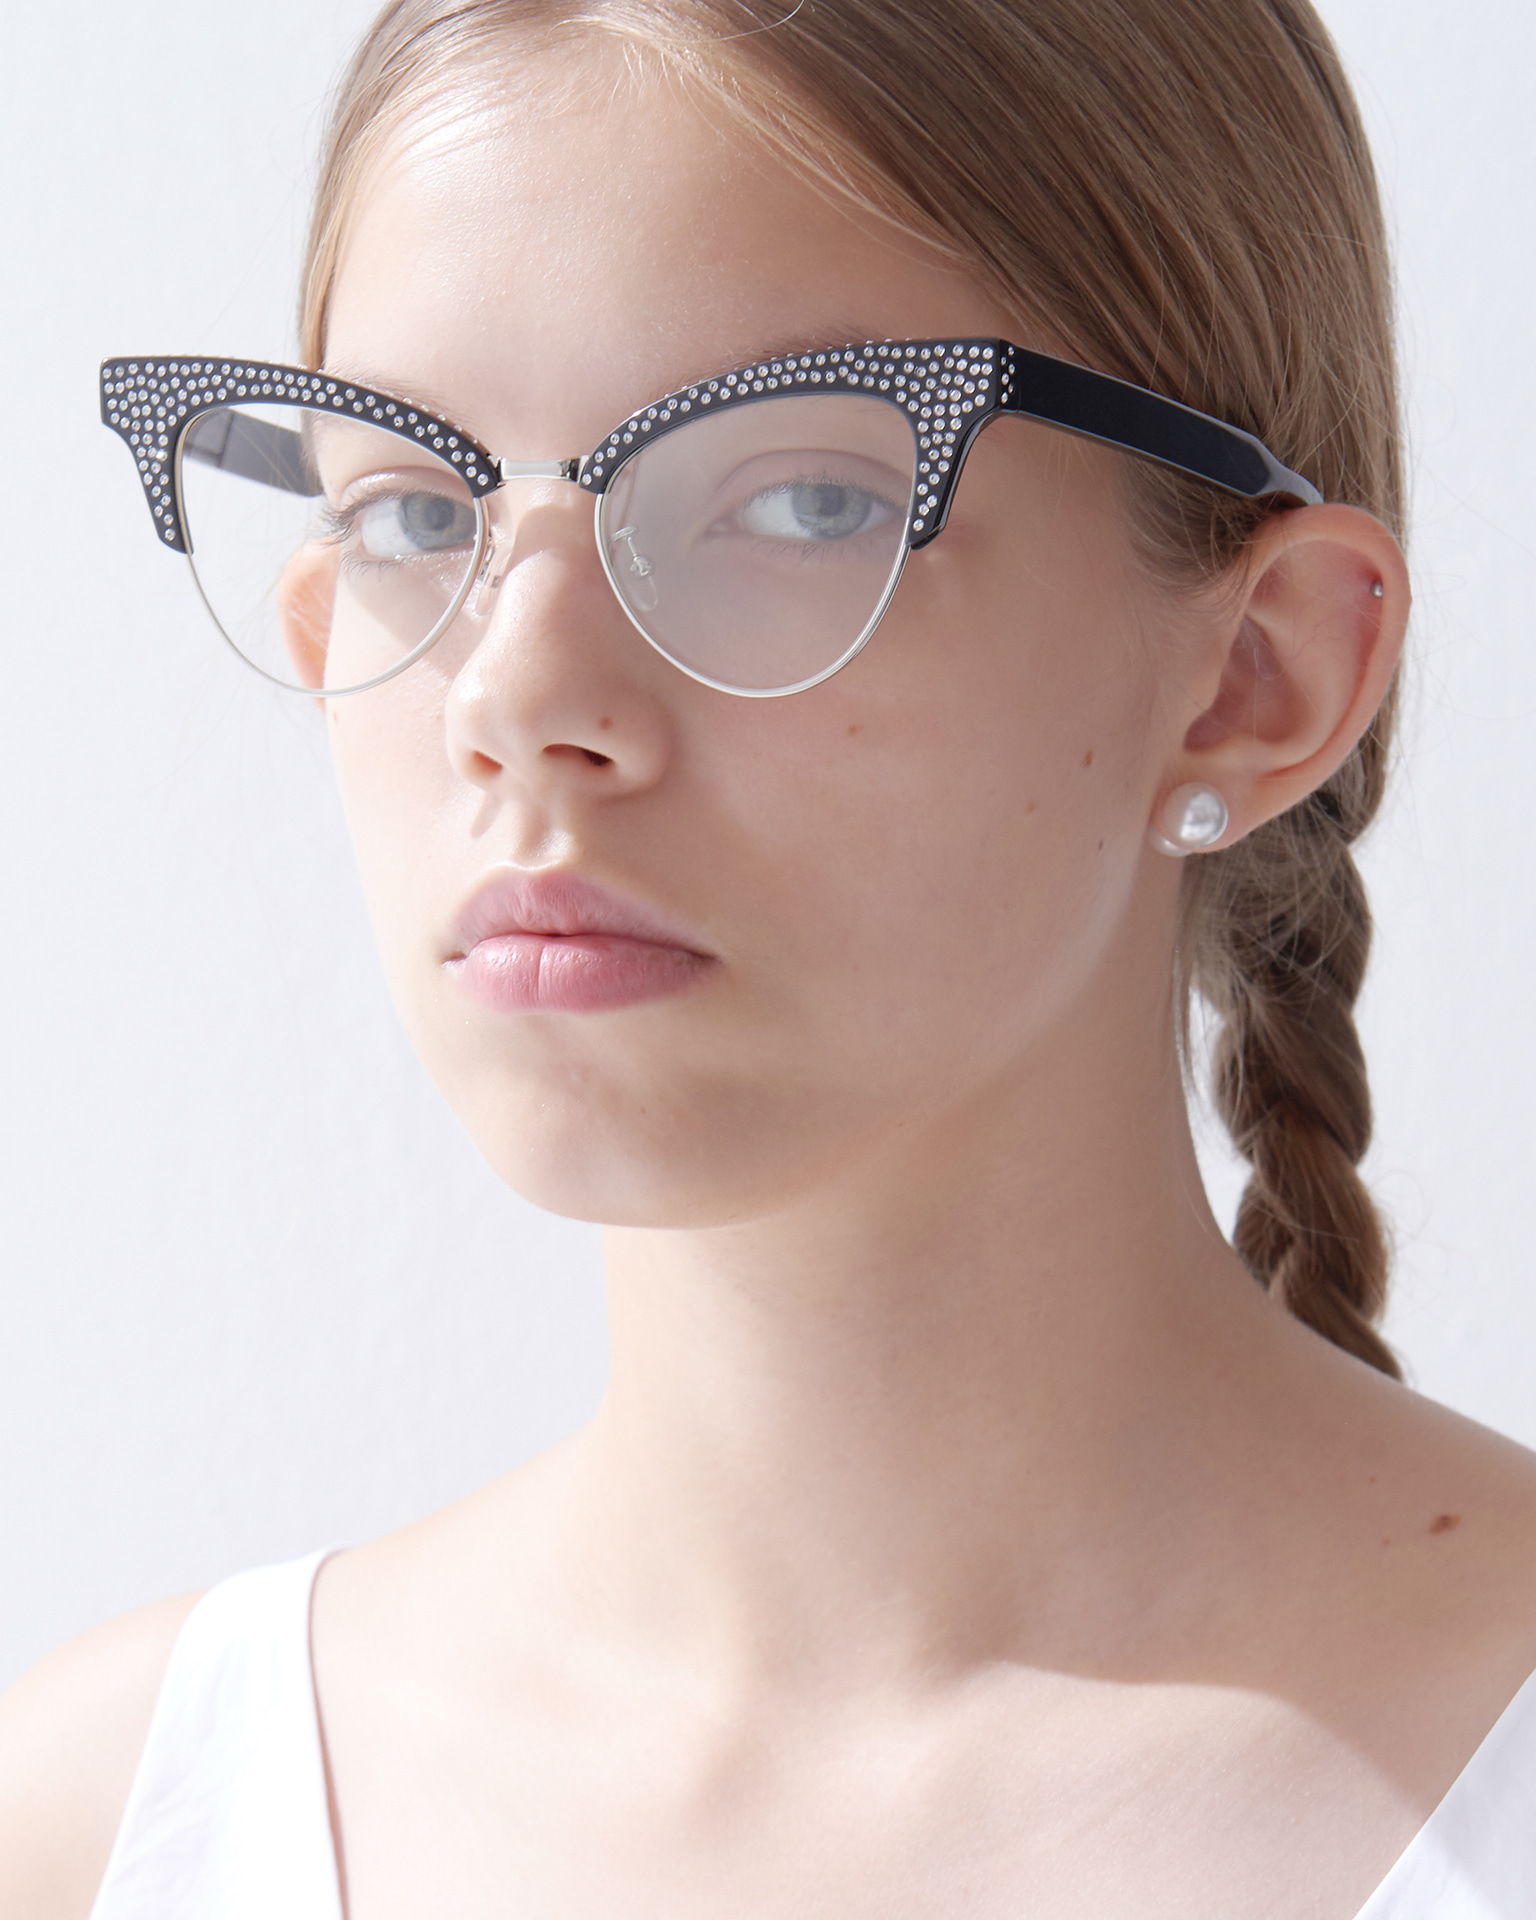 UNDER METAL SWAROVSKI GLASSES